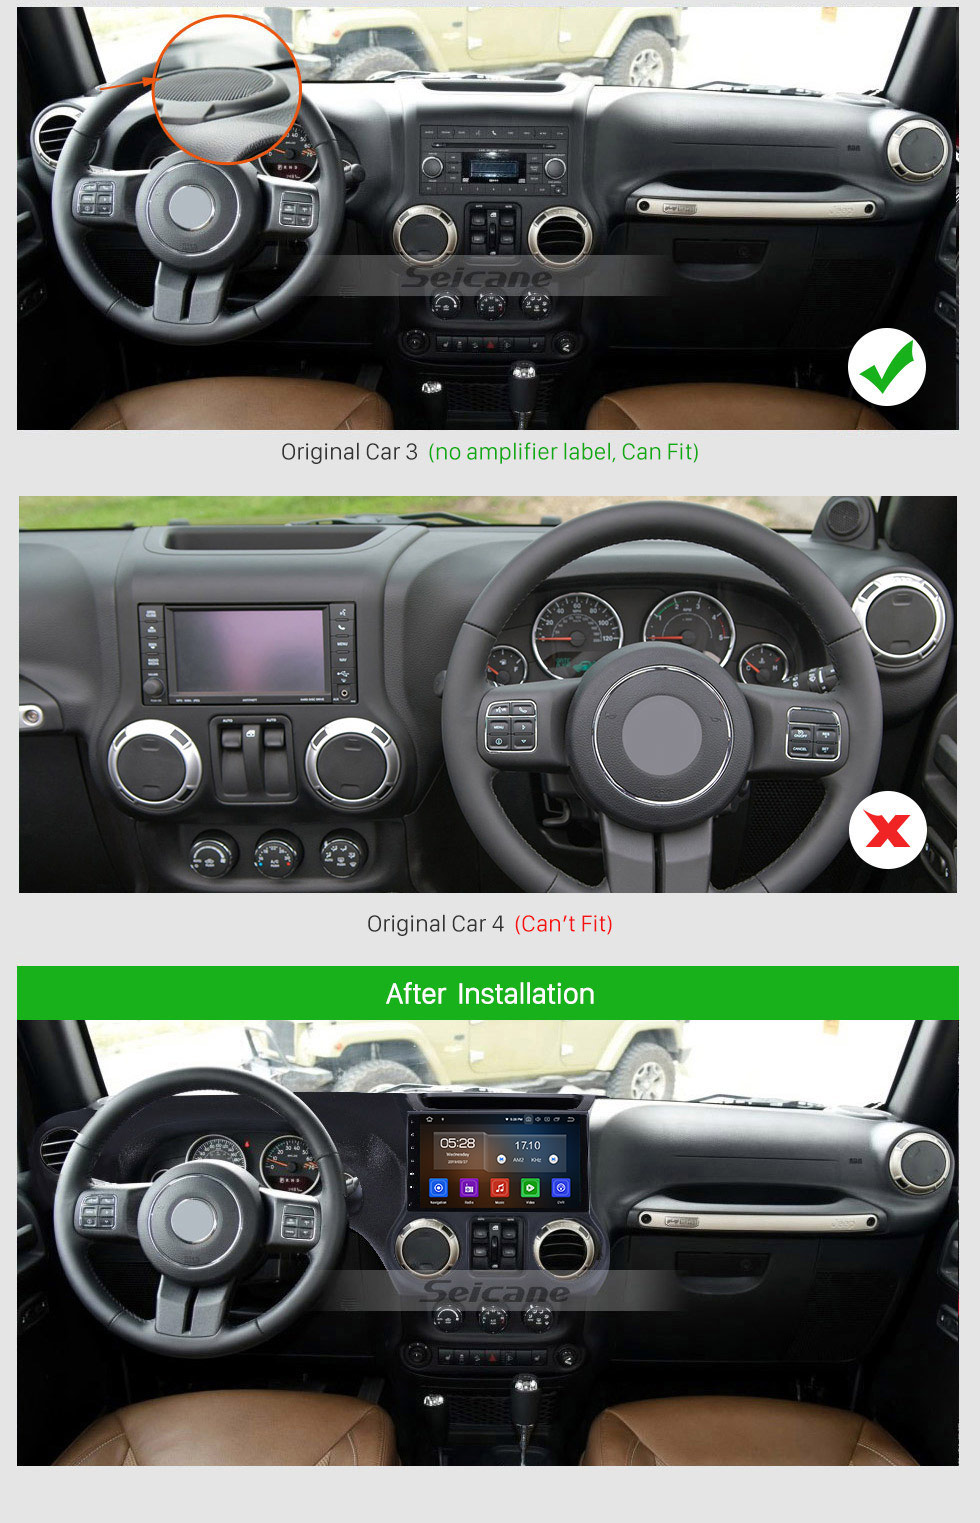 Seicane Android 9.0 10.1 Inch Touchscreen Radio For 2017 JEEP Wrangler Bluetooth Music GPS Navigation Head Unit Support Mirror Link DAB+ OBDII USB TPMS WiFi Steering Wheel Control